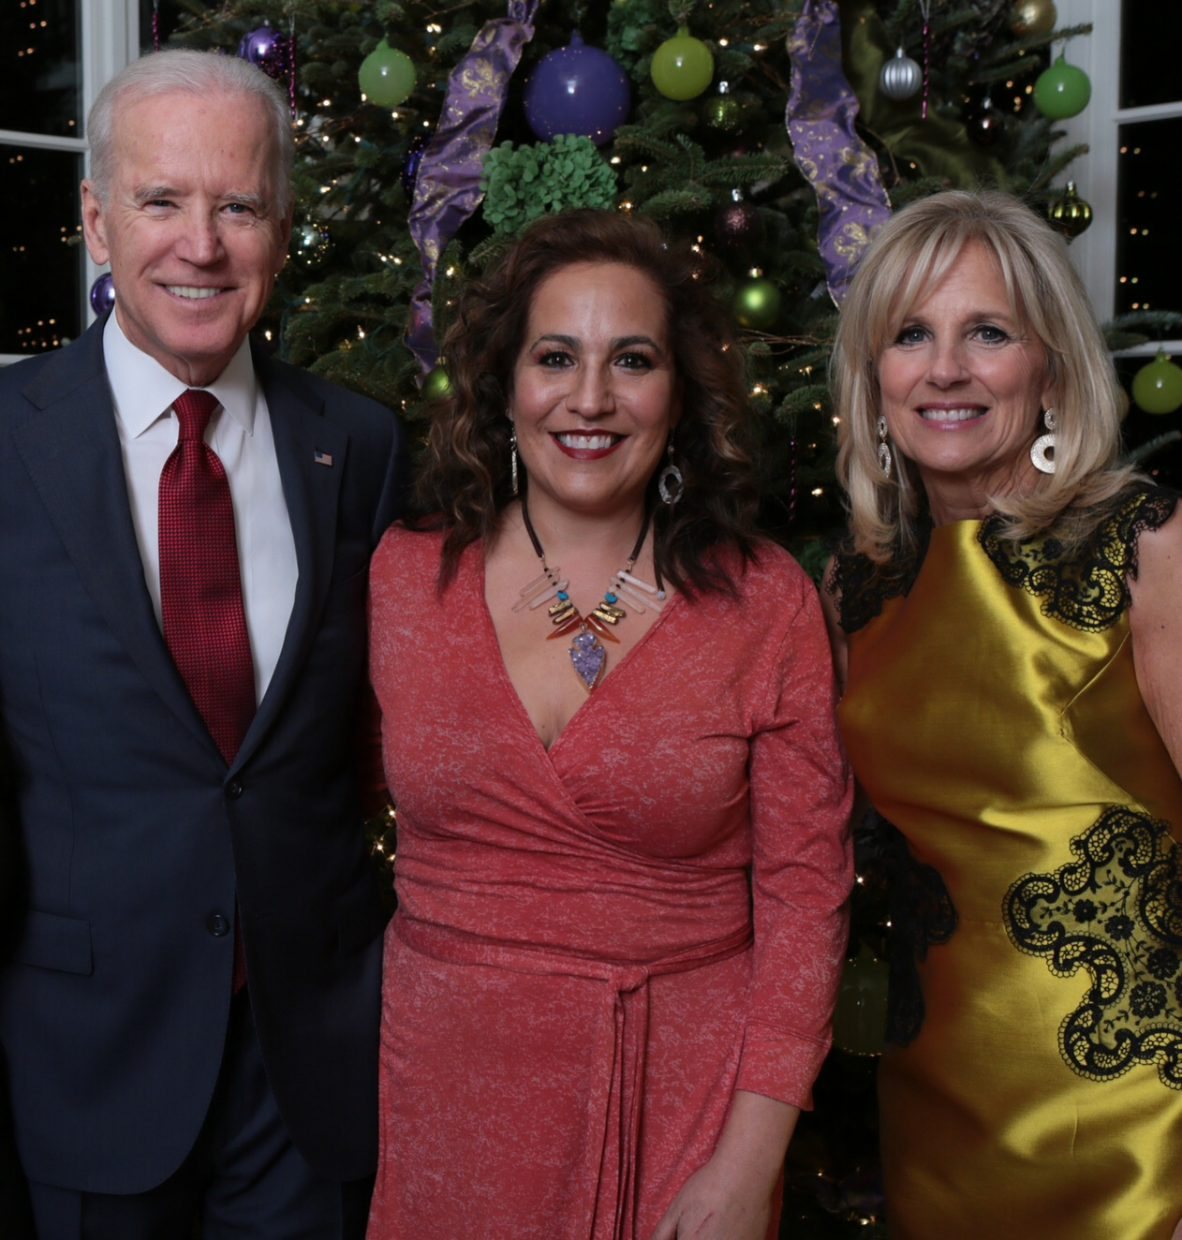 Steamboat Springs resident Paula Salky stands with Vice President Joe Biden and his wife, Dr. Jill Biden. Salky went on a trip to Washington, D.C., last week and attended various dinners and celebrations in light of Hanukkah and the 35th annual Festival of Lights celebration.